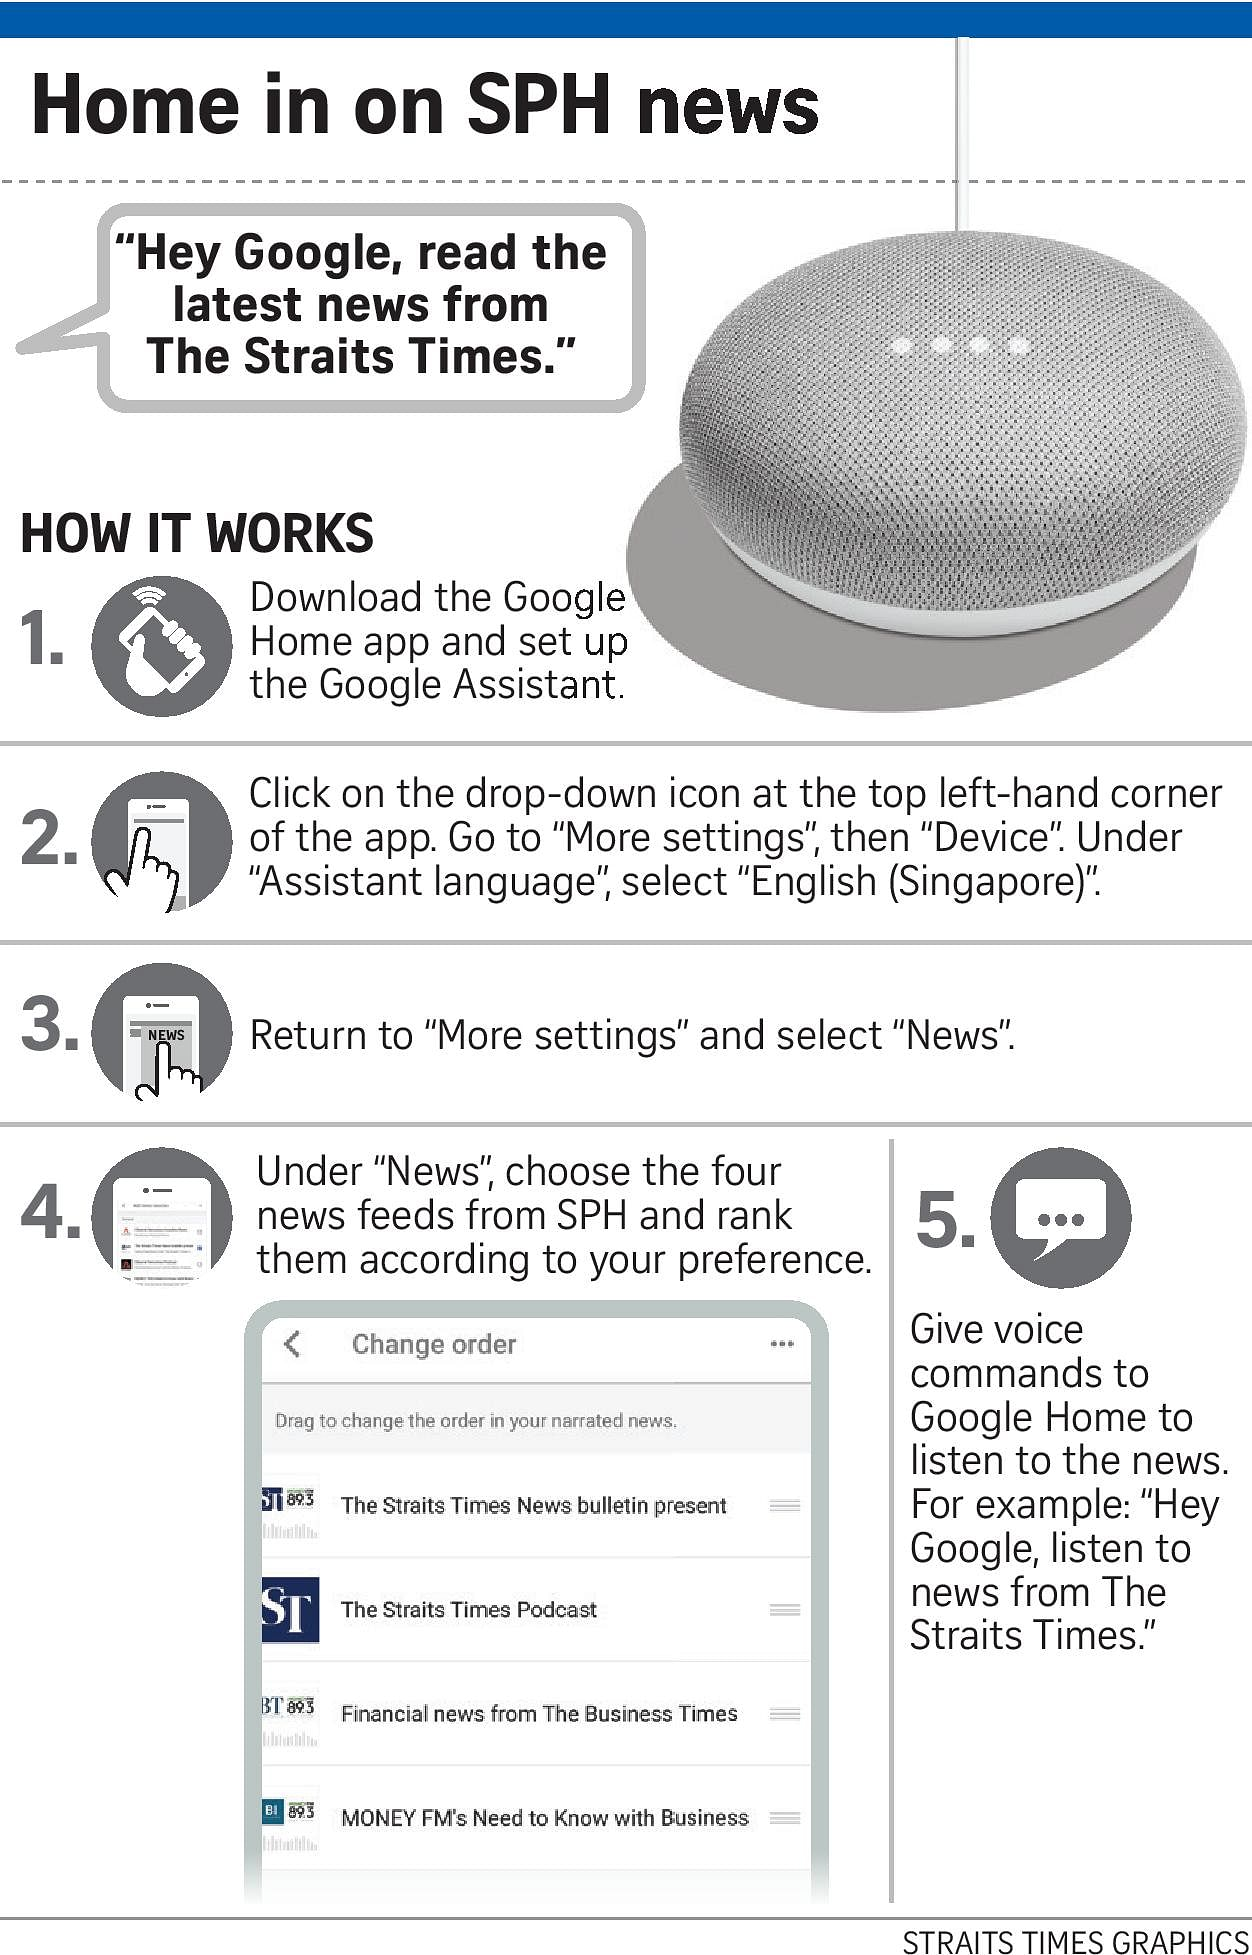 Tune in to news, podcasts from ST on Google Home, Singapore